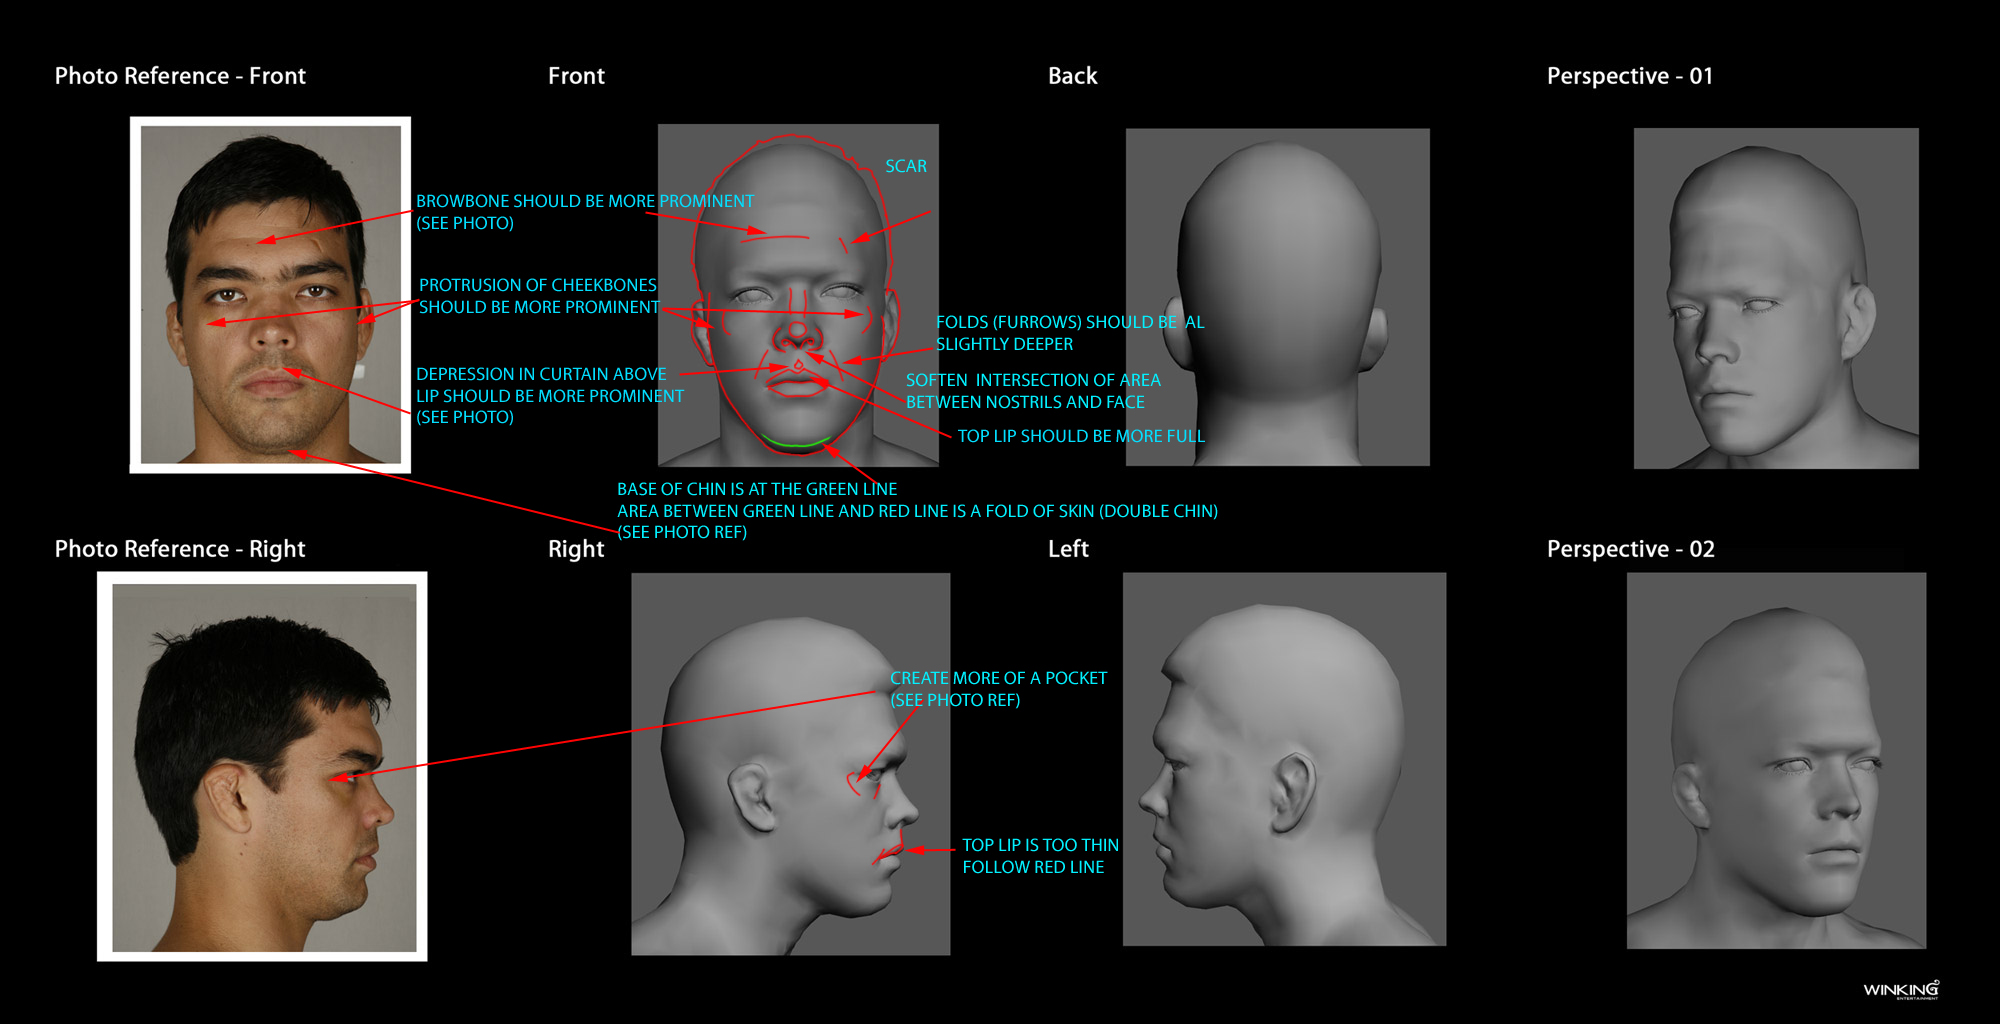 WK_080731_lyoto_machida_Low_Poly_Model_Head copy.jpg